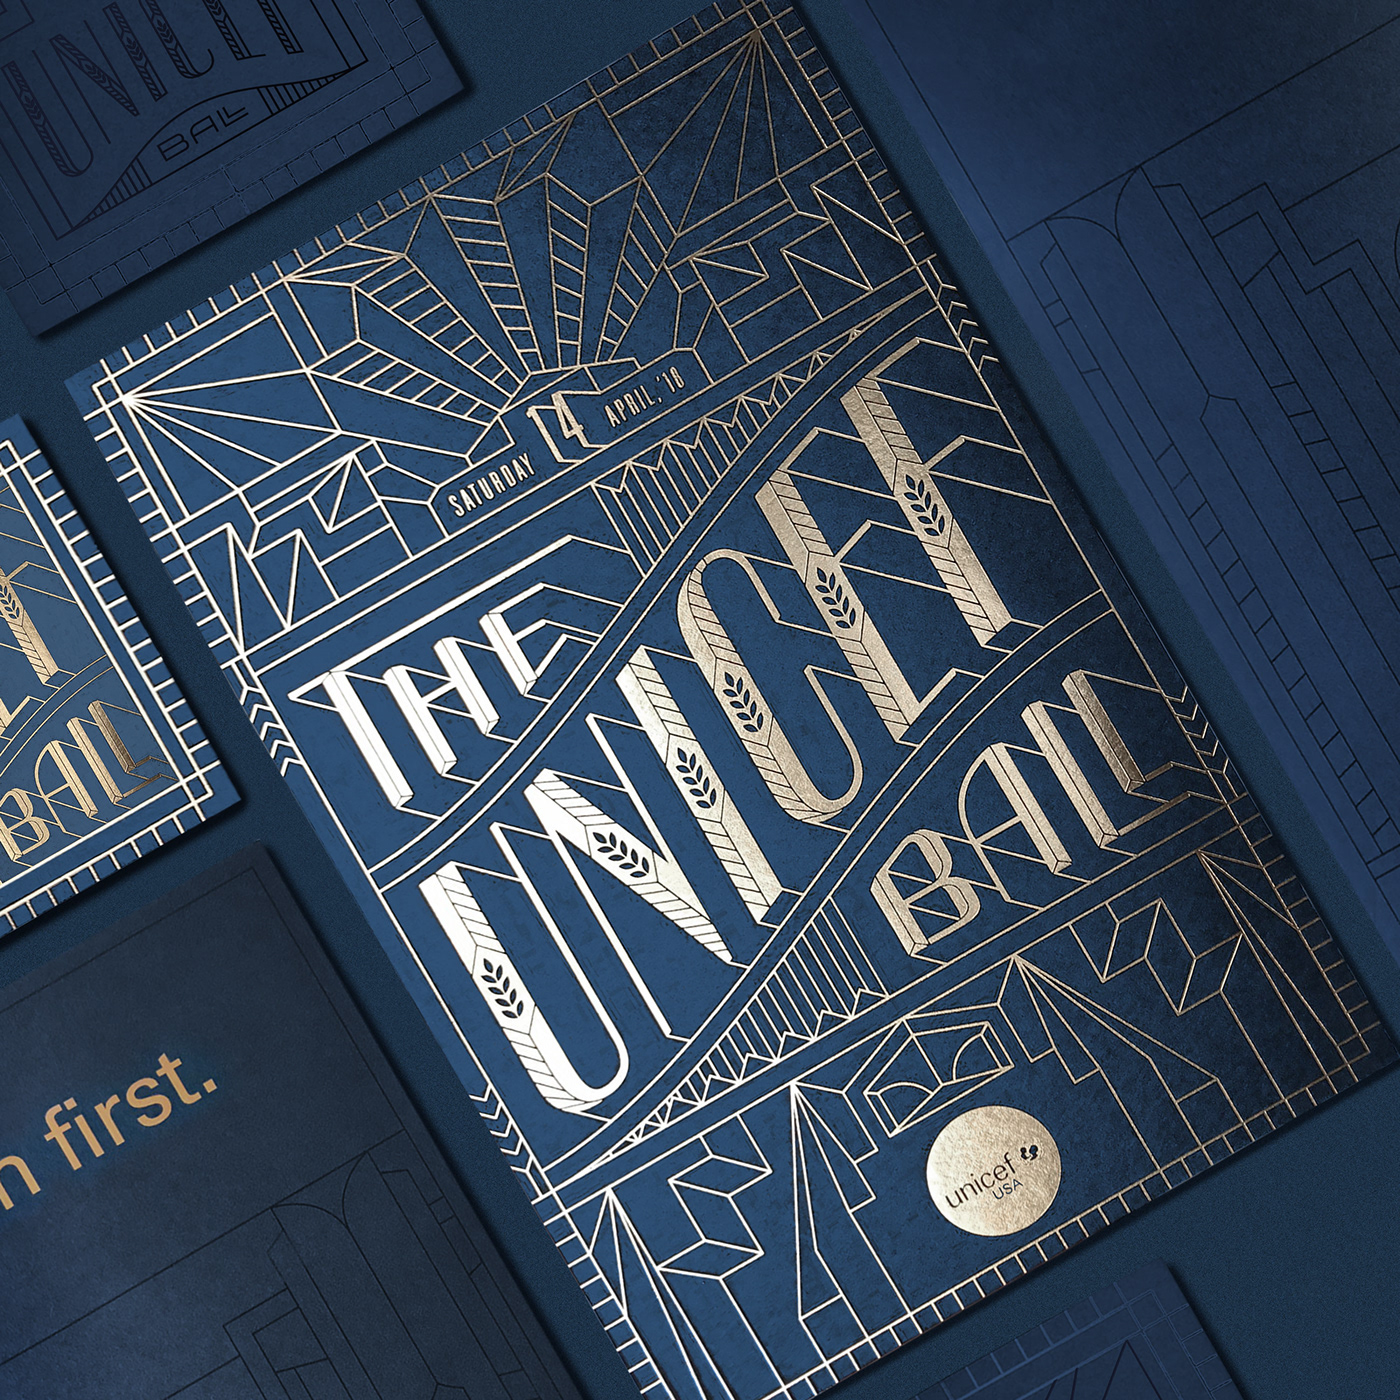 The Unicef Ball 2018 Identity